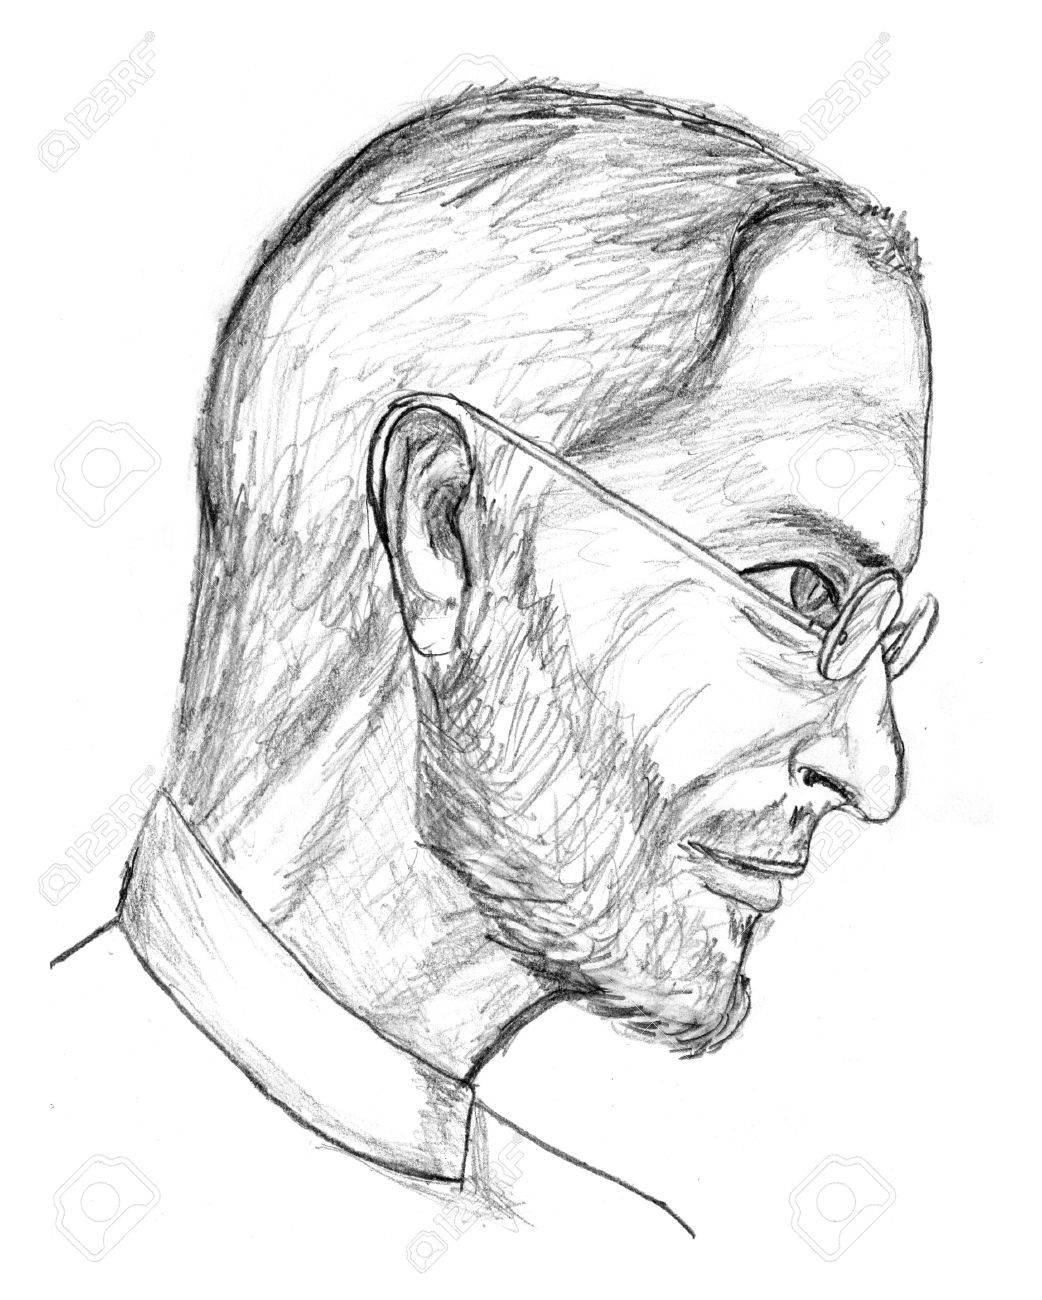 Steve jobs pencil sketch stock photo 11215602